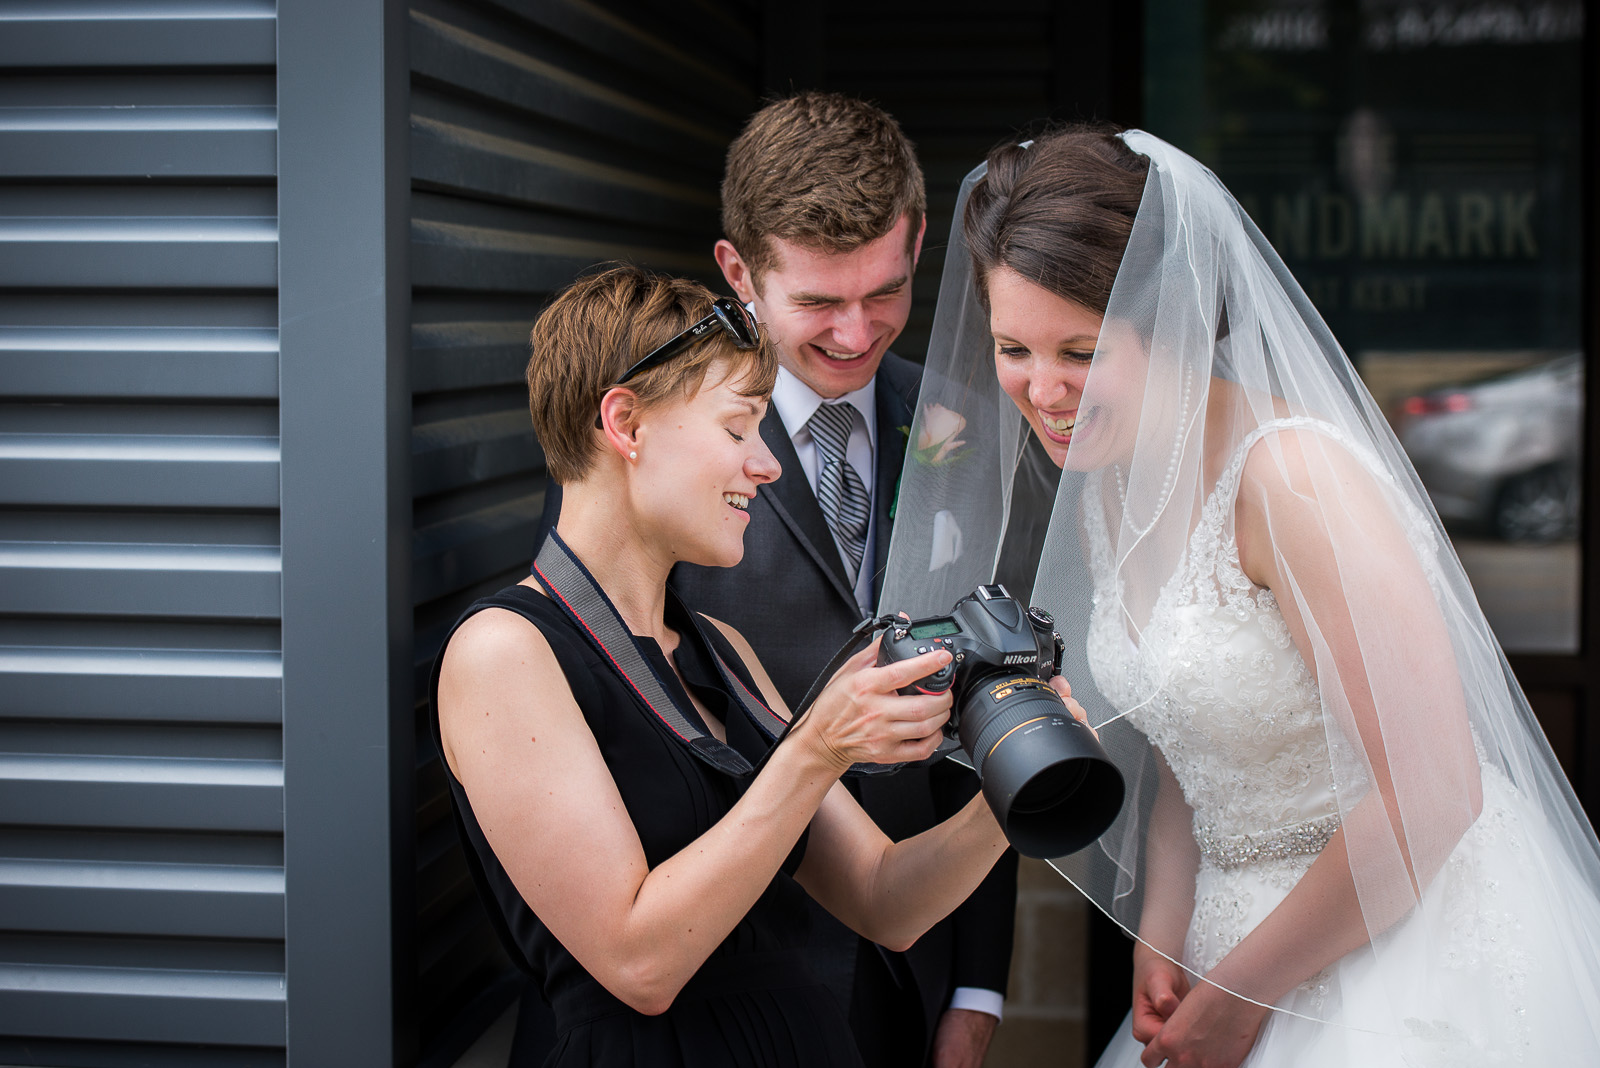 Eric_and_Christy_Photography_Blog_Wedding_Kelly_Michael-58